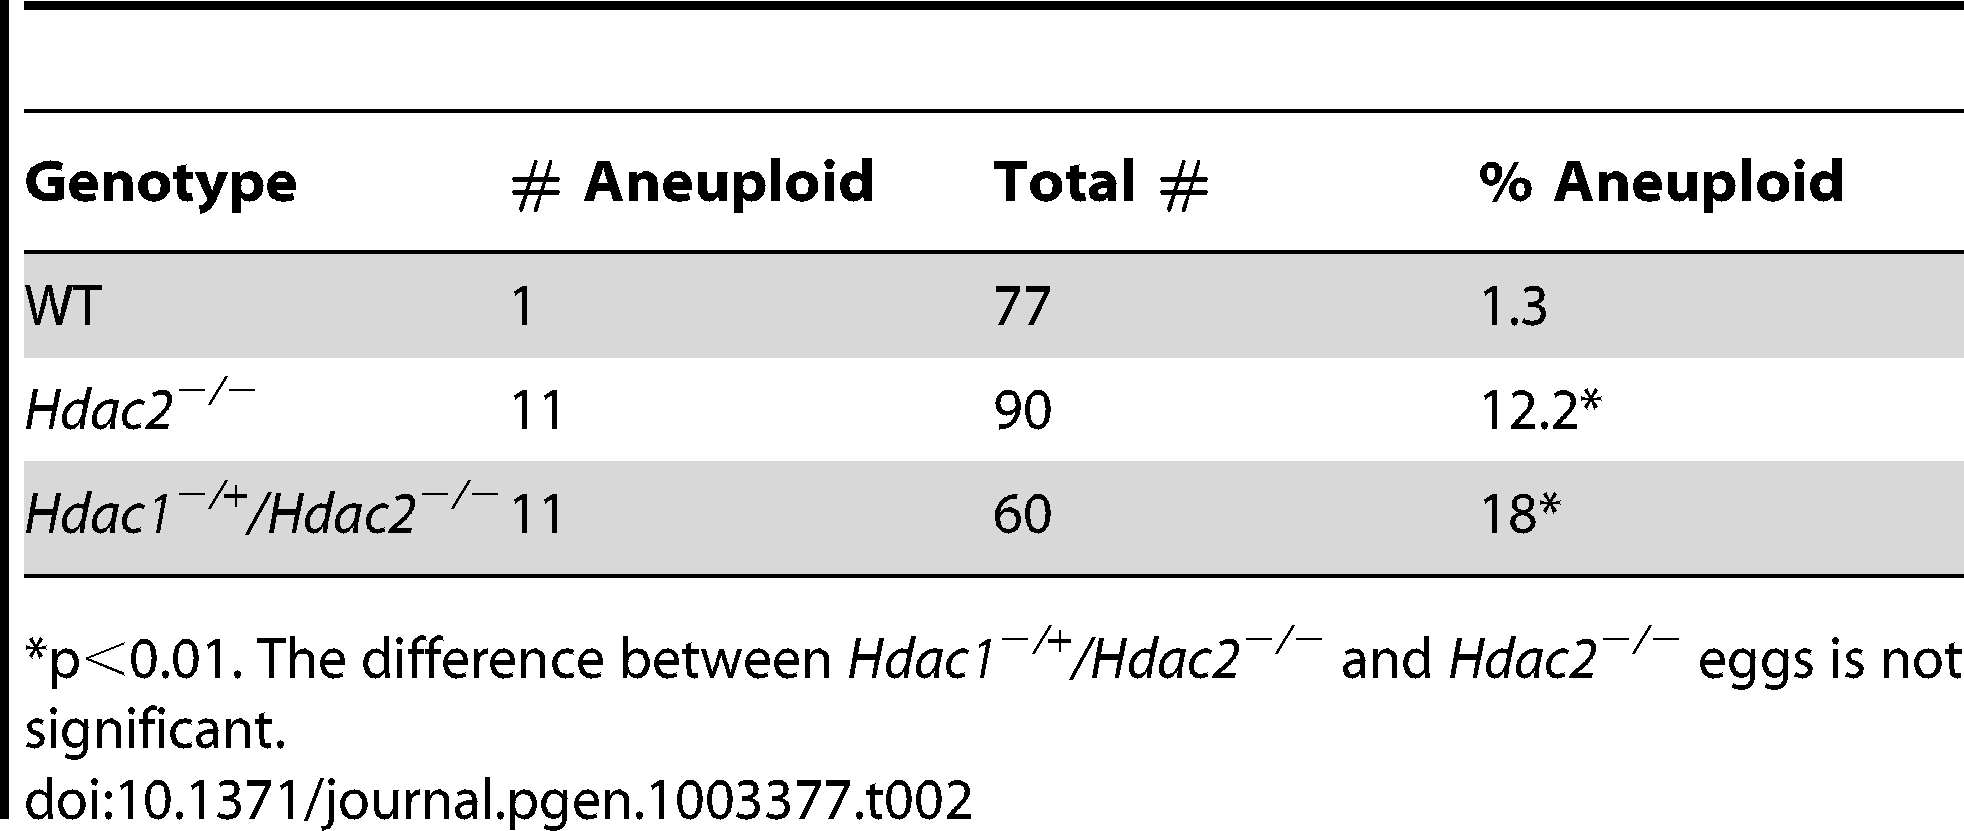 Incidence of aneuploidy in <i>Hdac1<sup>−/+</sup>/Hdac2<sup>−/−</sup></i> and <i>Hdac2<sup>−/−</sup></i> eggs.